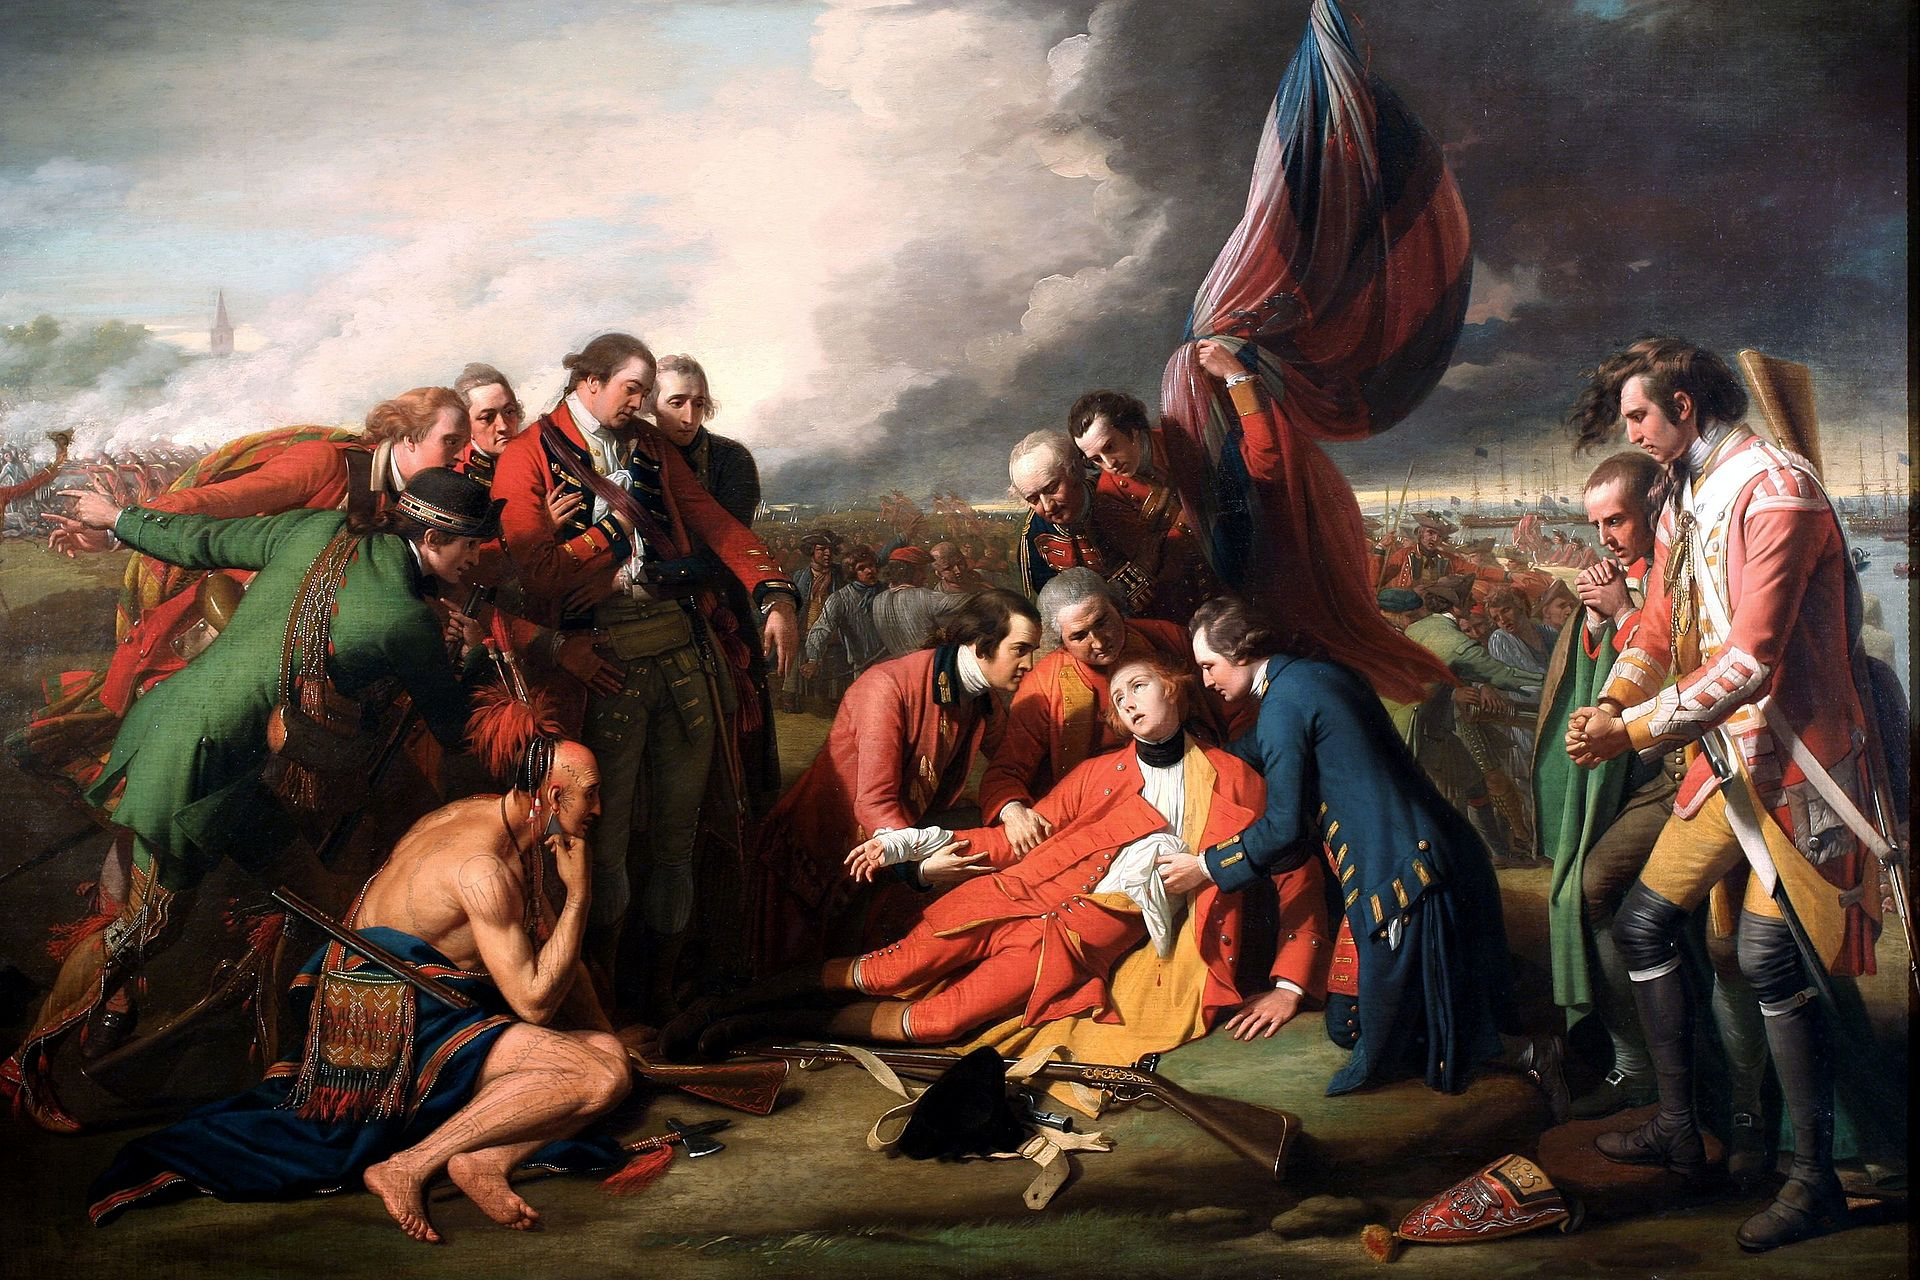 Tragic Heroes – 10 Military Commanders Who Were Struck Down in Their Moment of Triumph - MilitaryHistoryNow.com